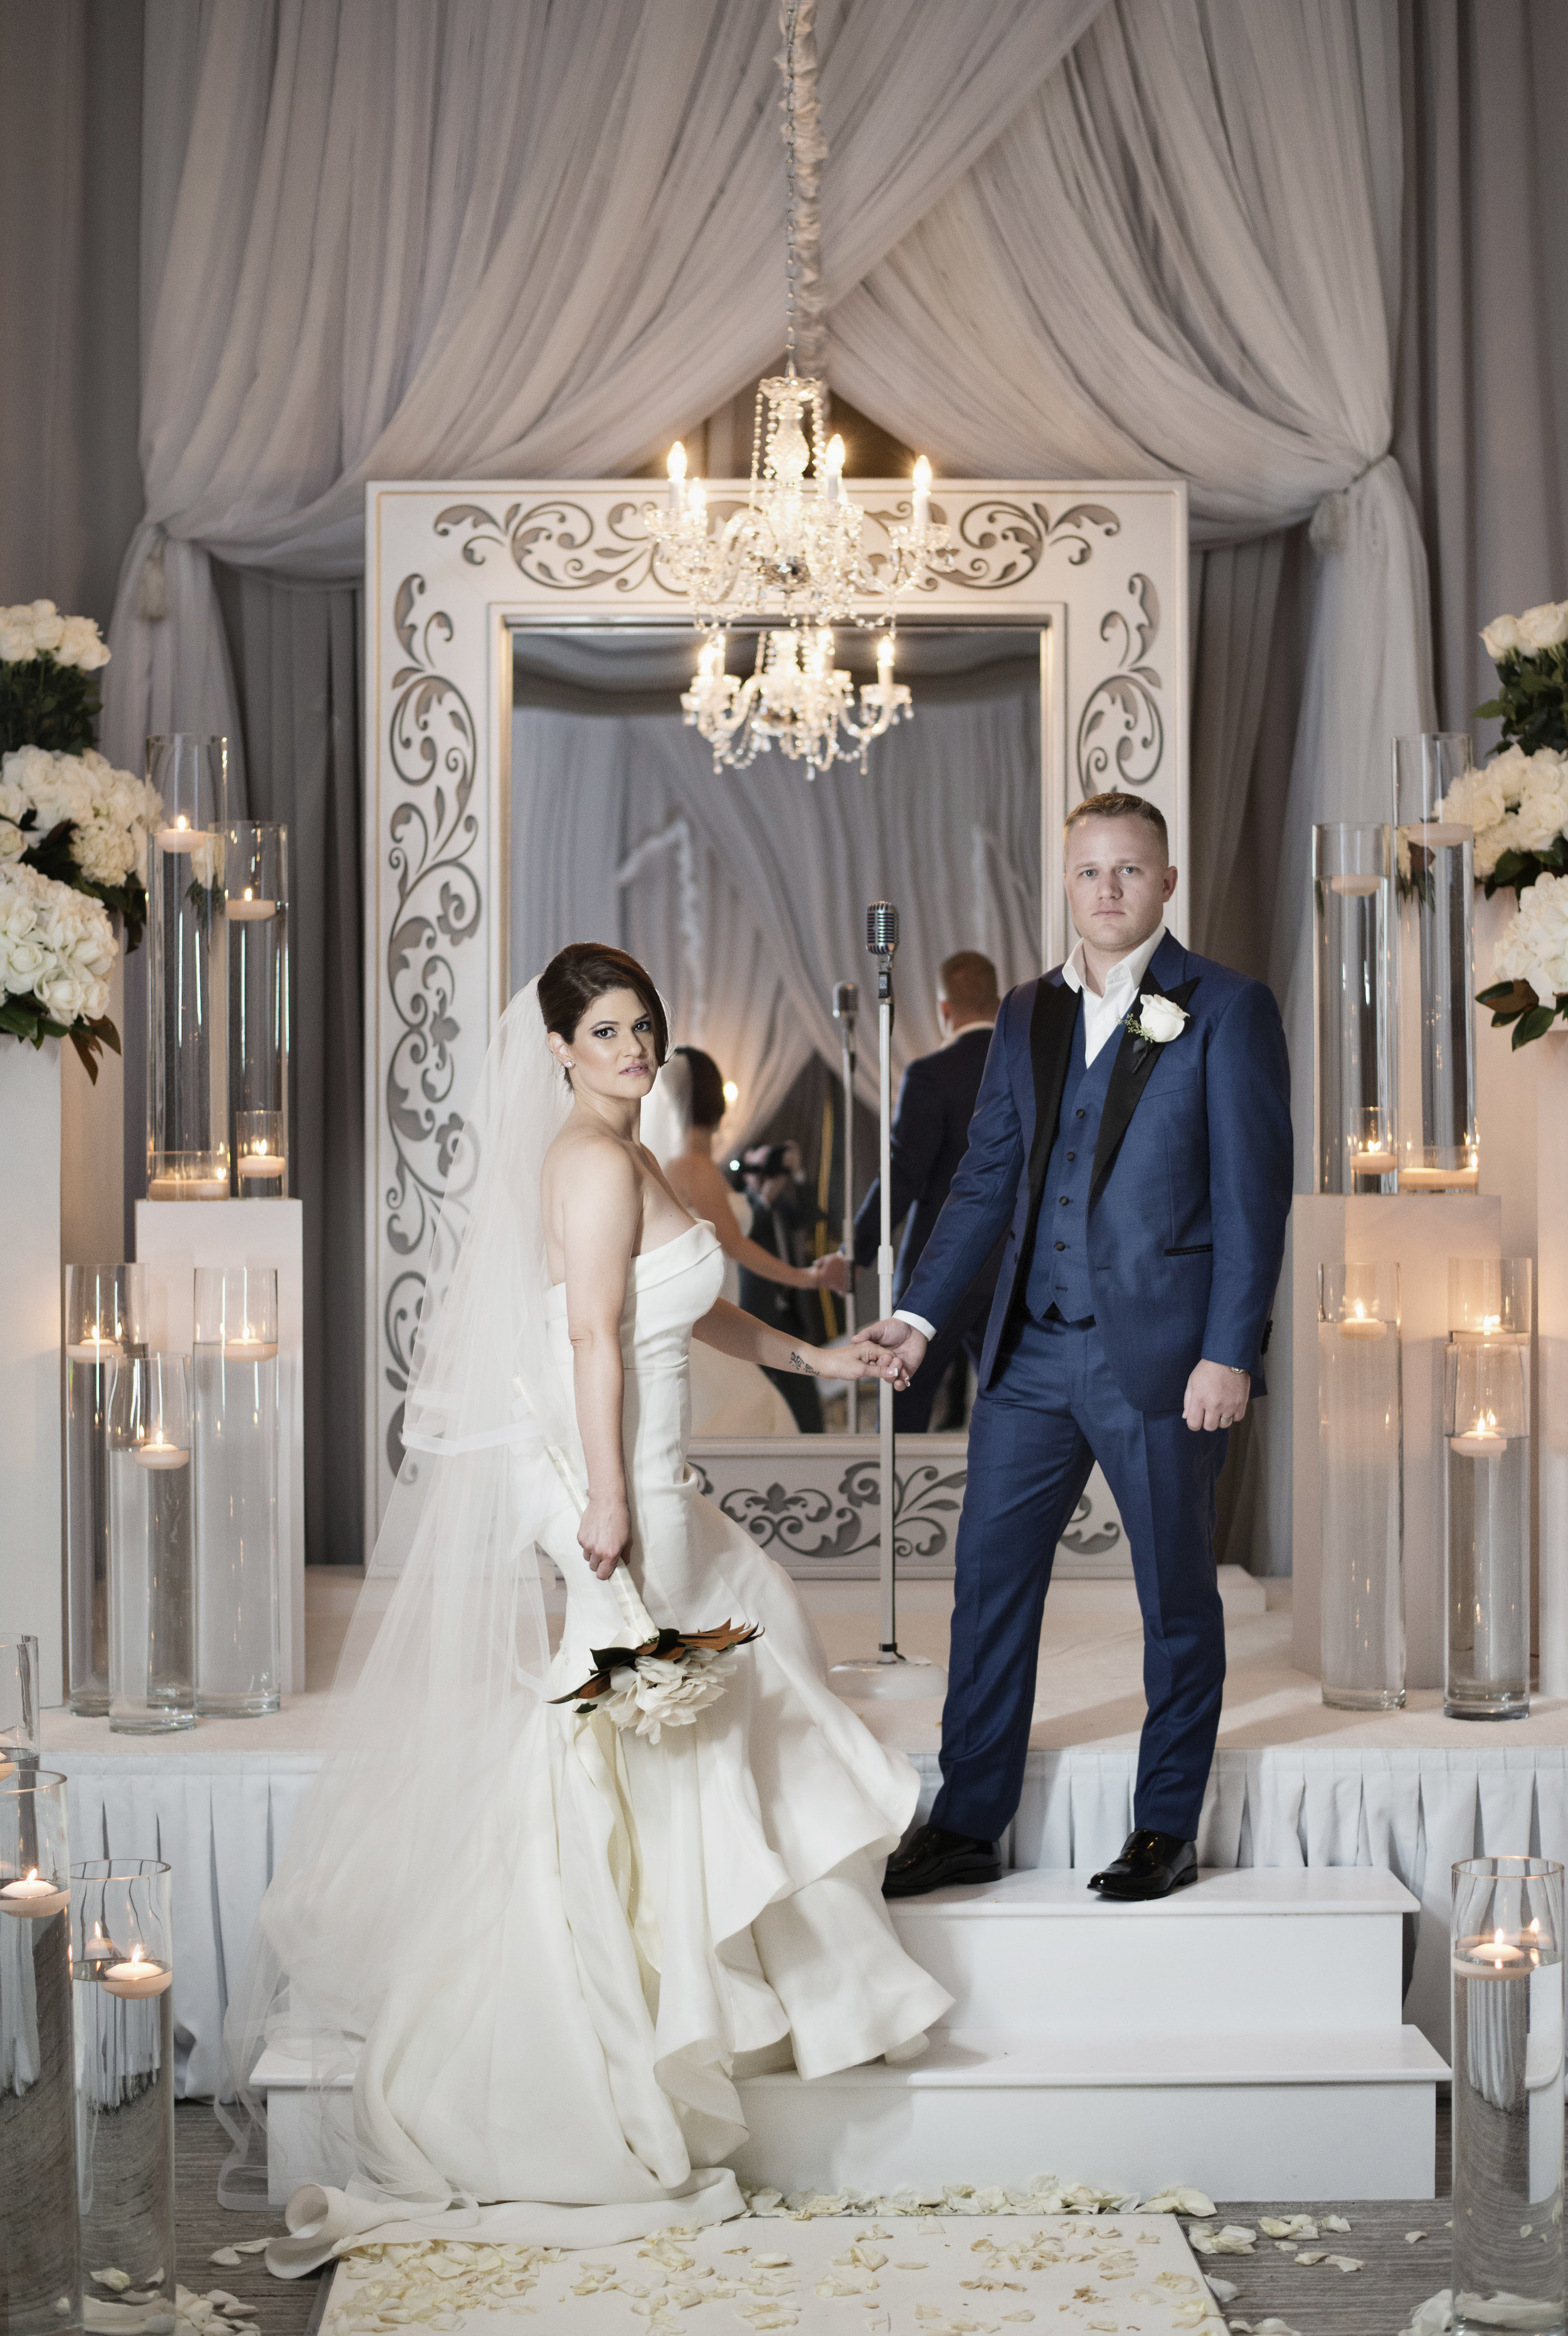 Las Vegas Wedding Planner Andrea Eppolito produced this luxury wedding at The Four Seasons Las Vegas. Decor by DBD Vegas. Images by AltF Photography.